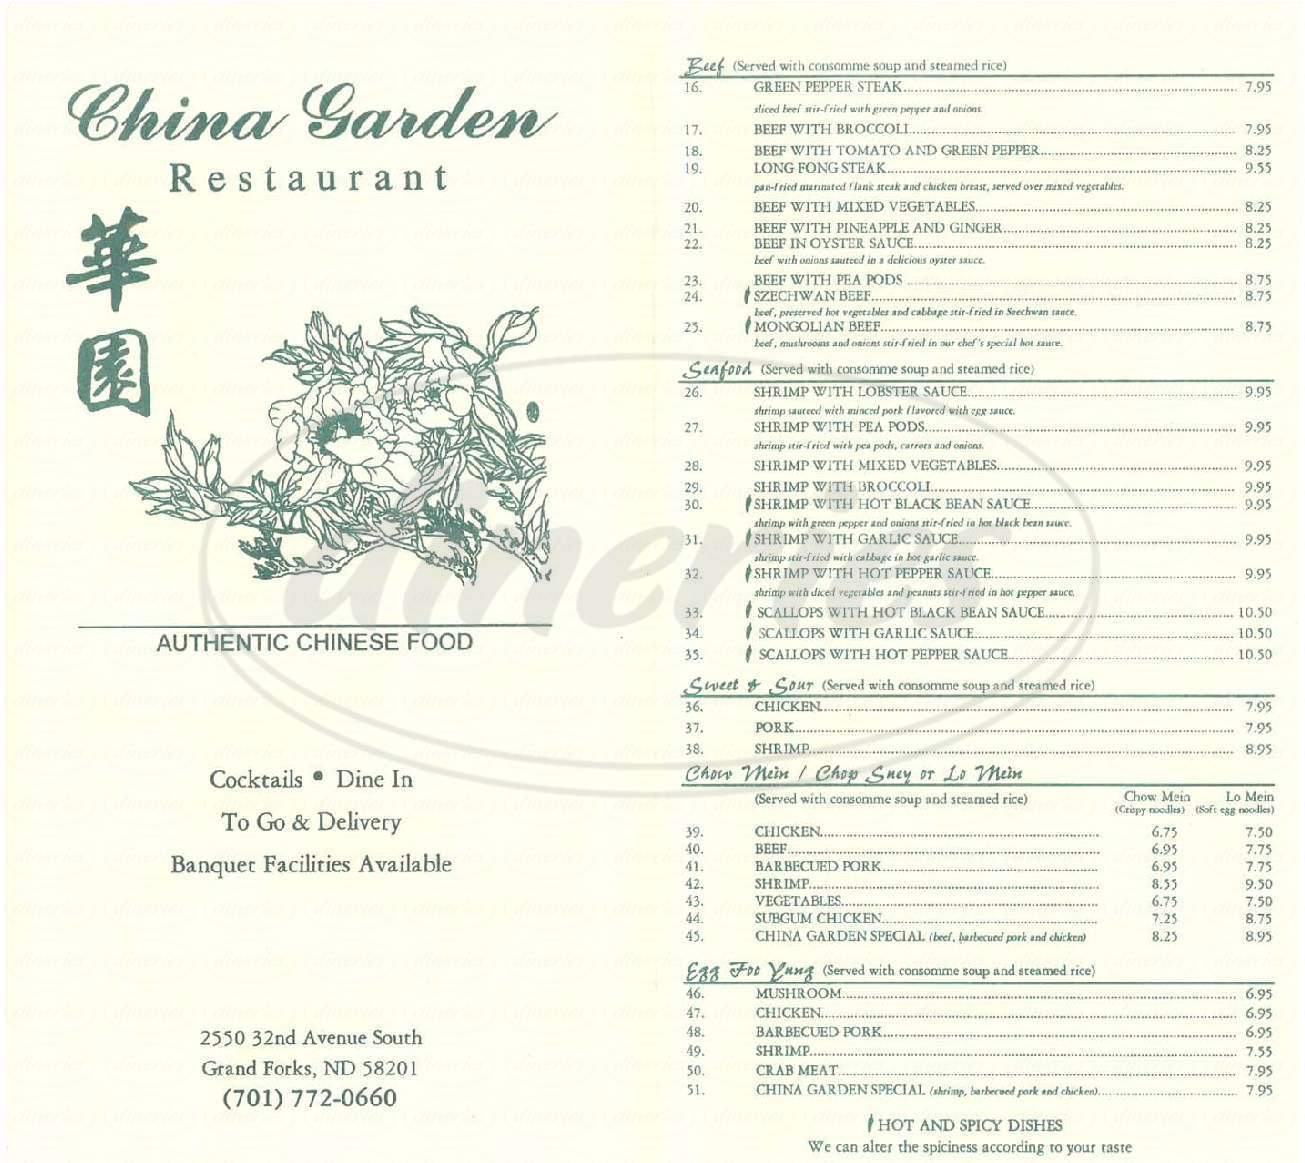 menu for China Garden Restaurant